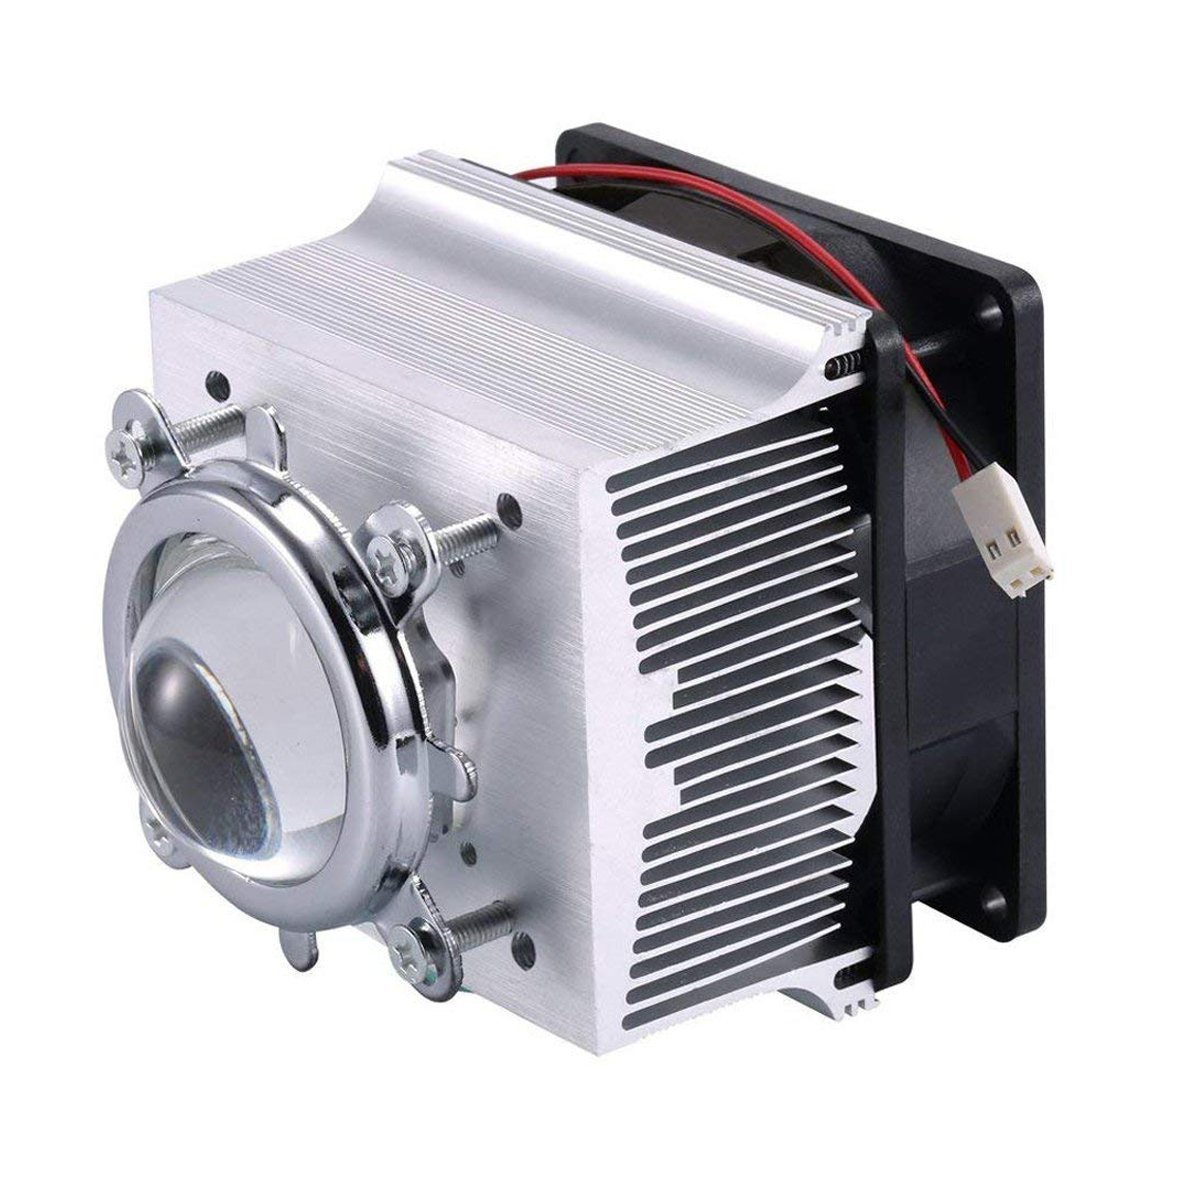 TX Aluminium Heatsink Cooling Fan+44mm Lens 120 Degree for 50W 100W Led Chip (Heatsink +120 Degree Lens)